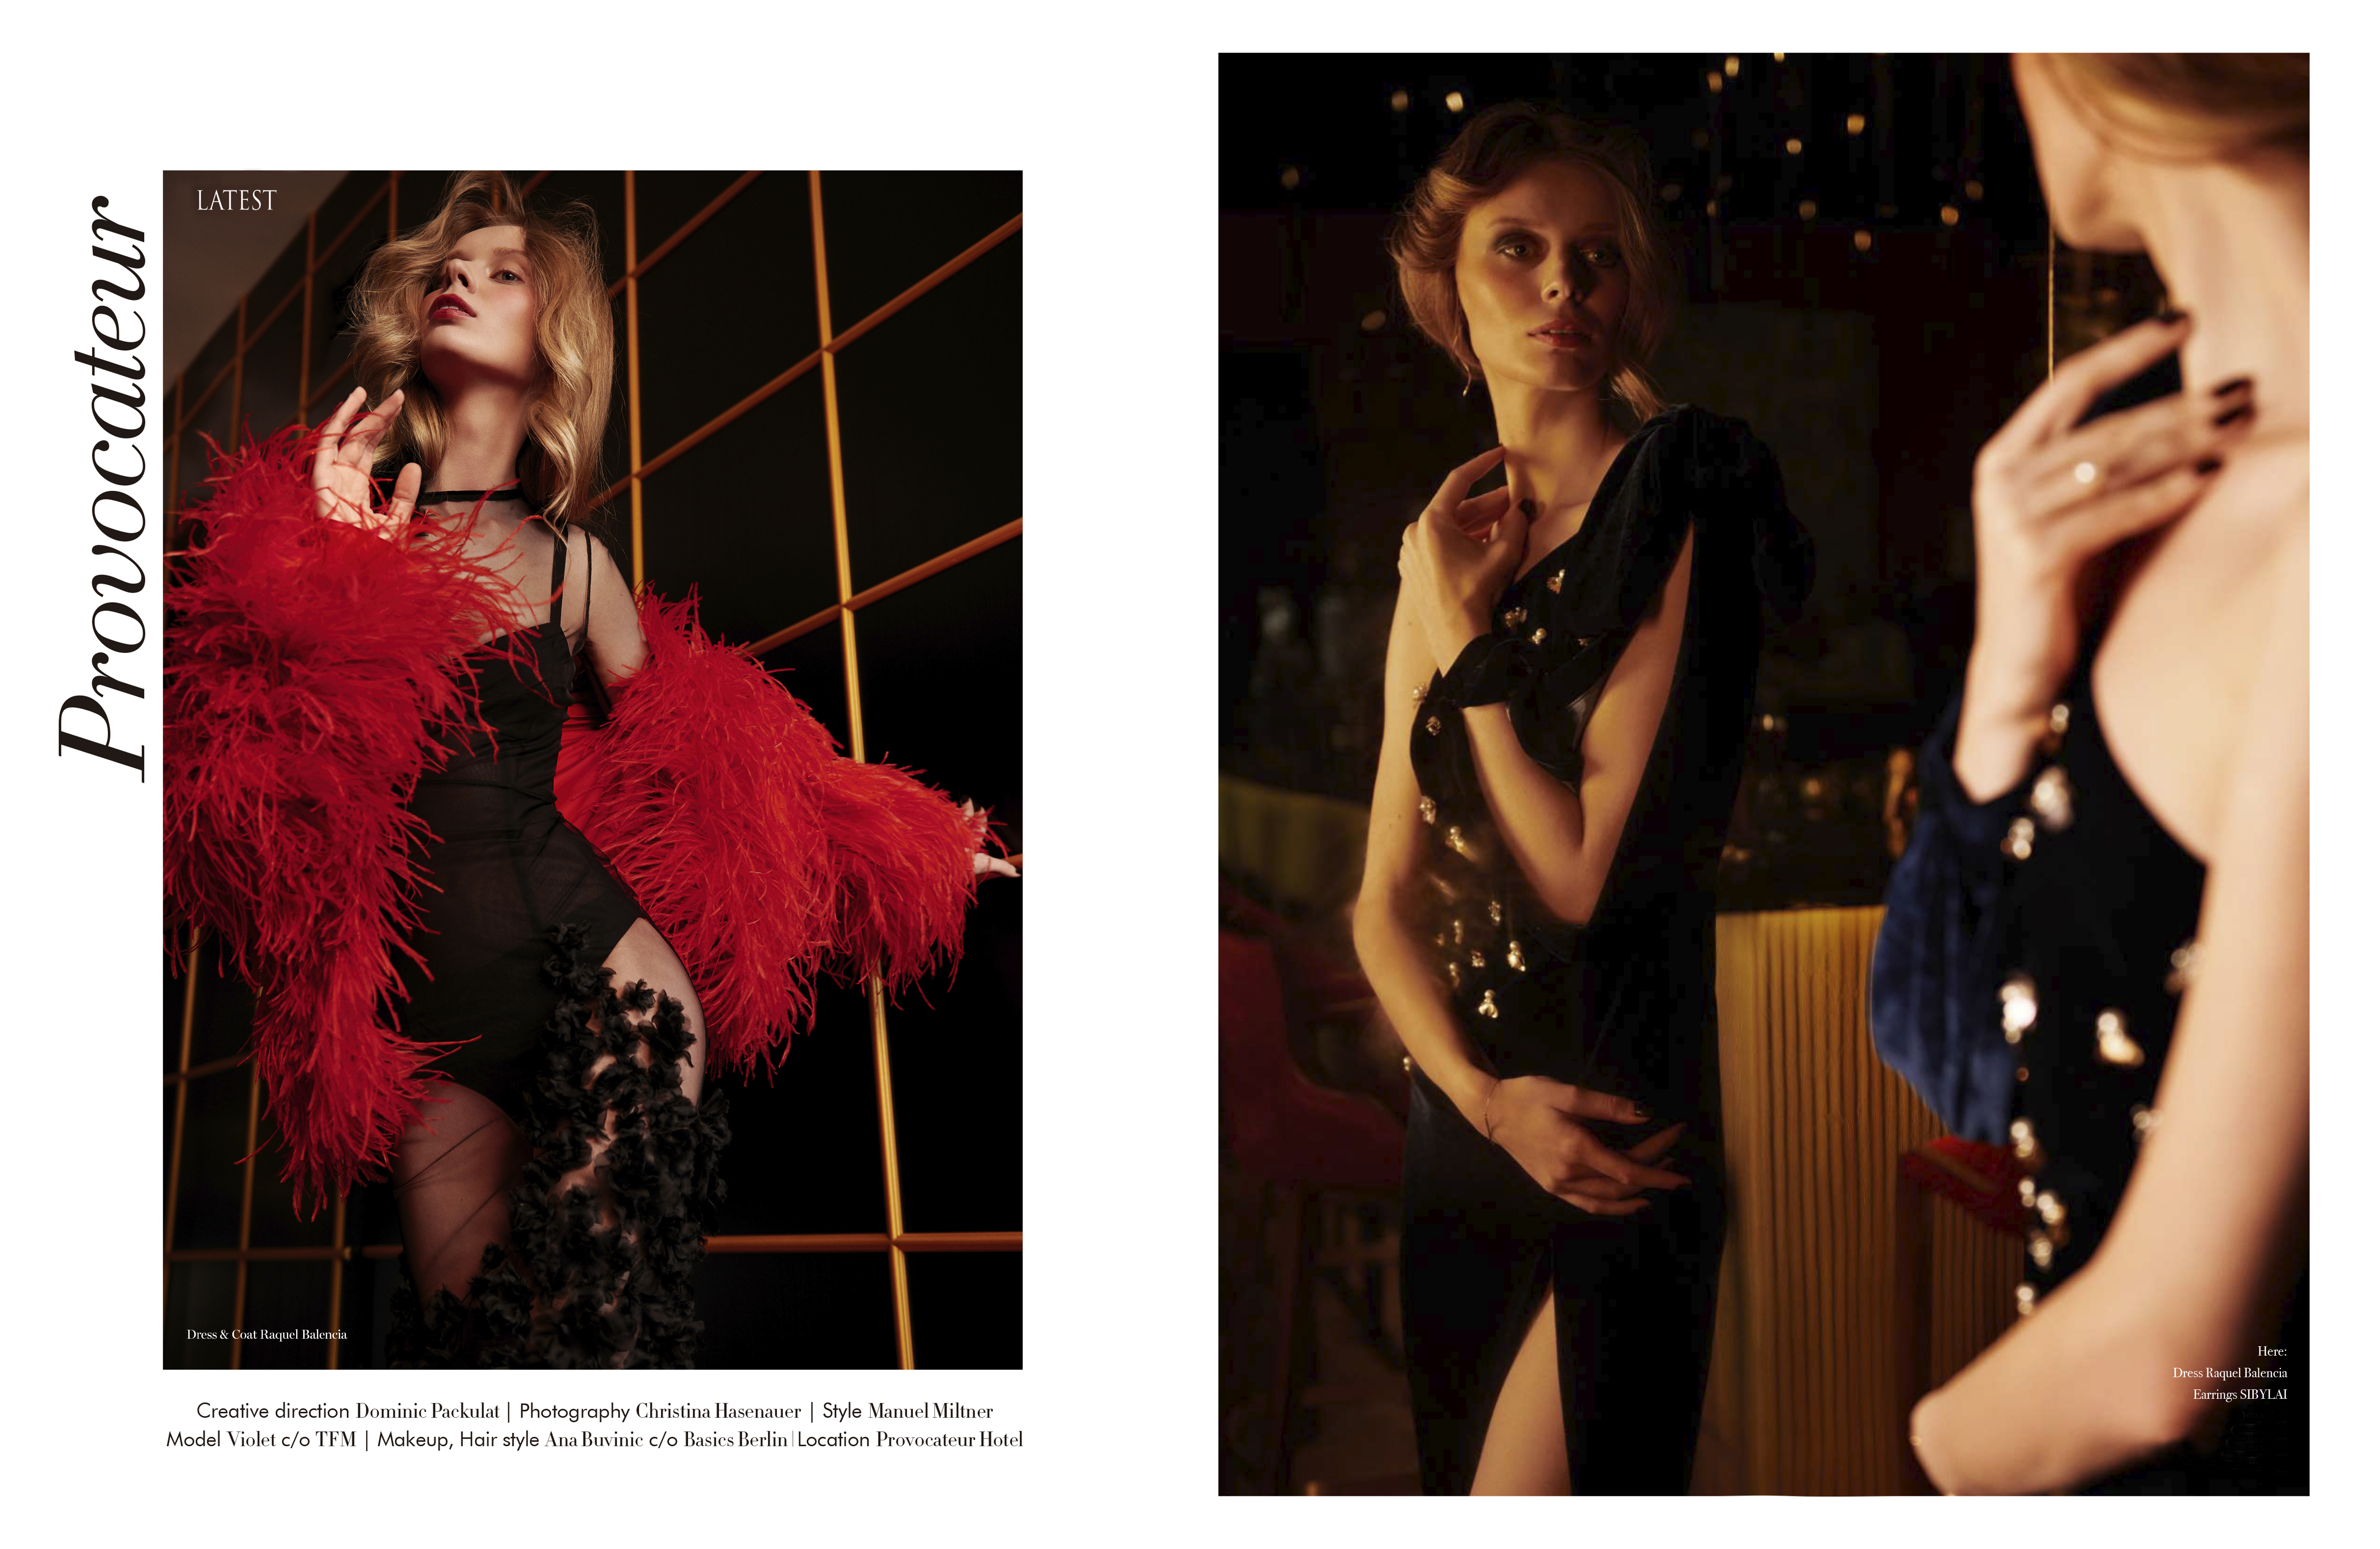 RAQUEL BALENCIA FEATURED IN LATEST MAGAZINE FEBRUARY ISSUE BY CHRISTINA HASENAUER